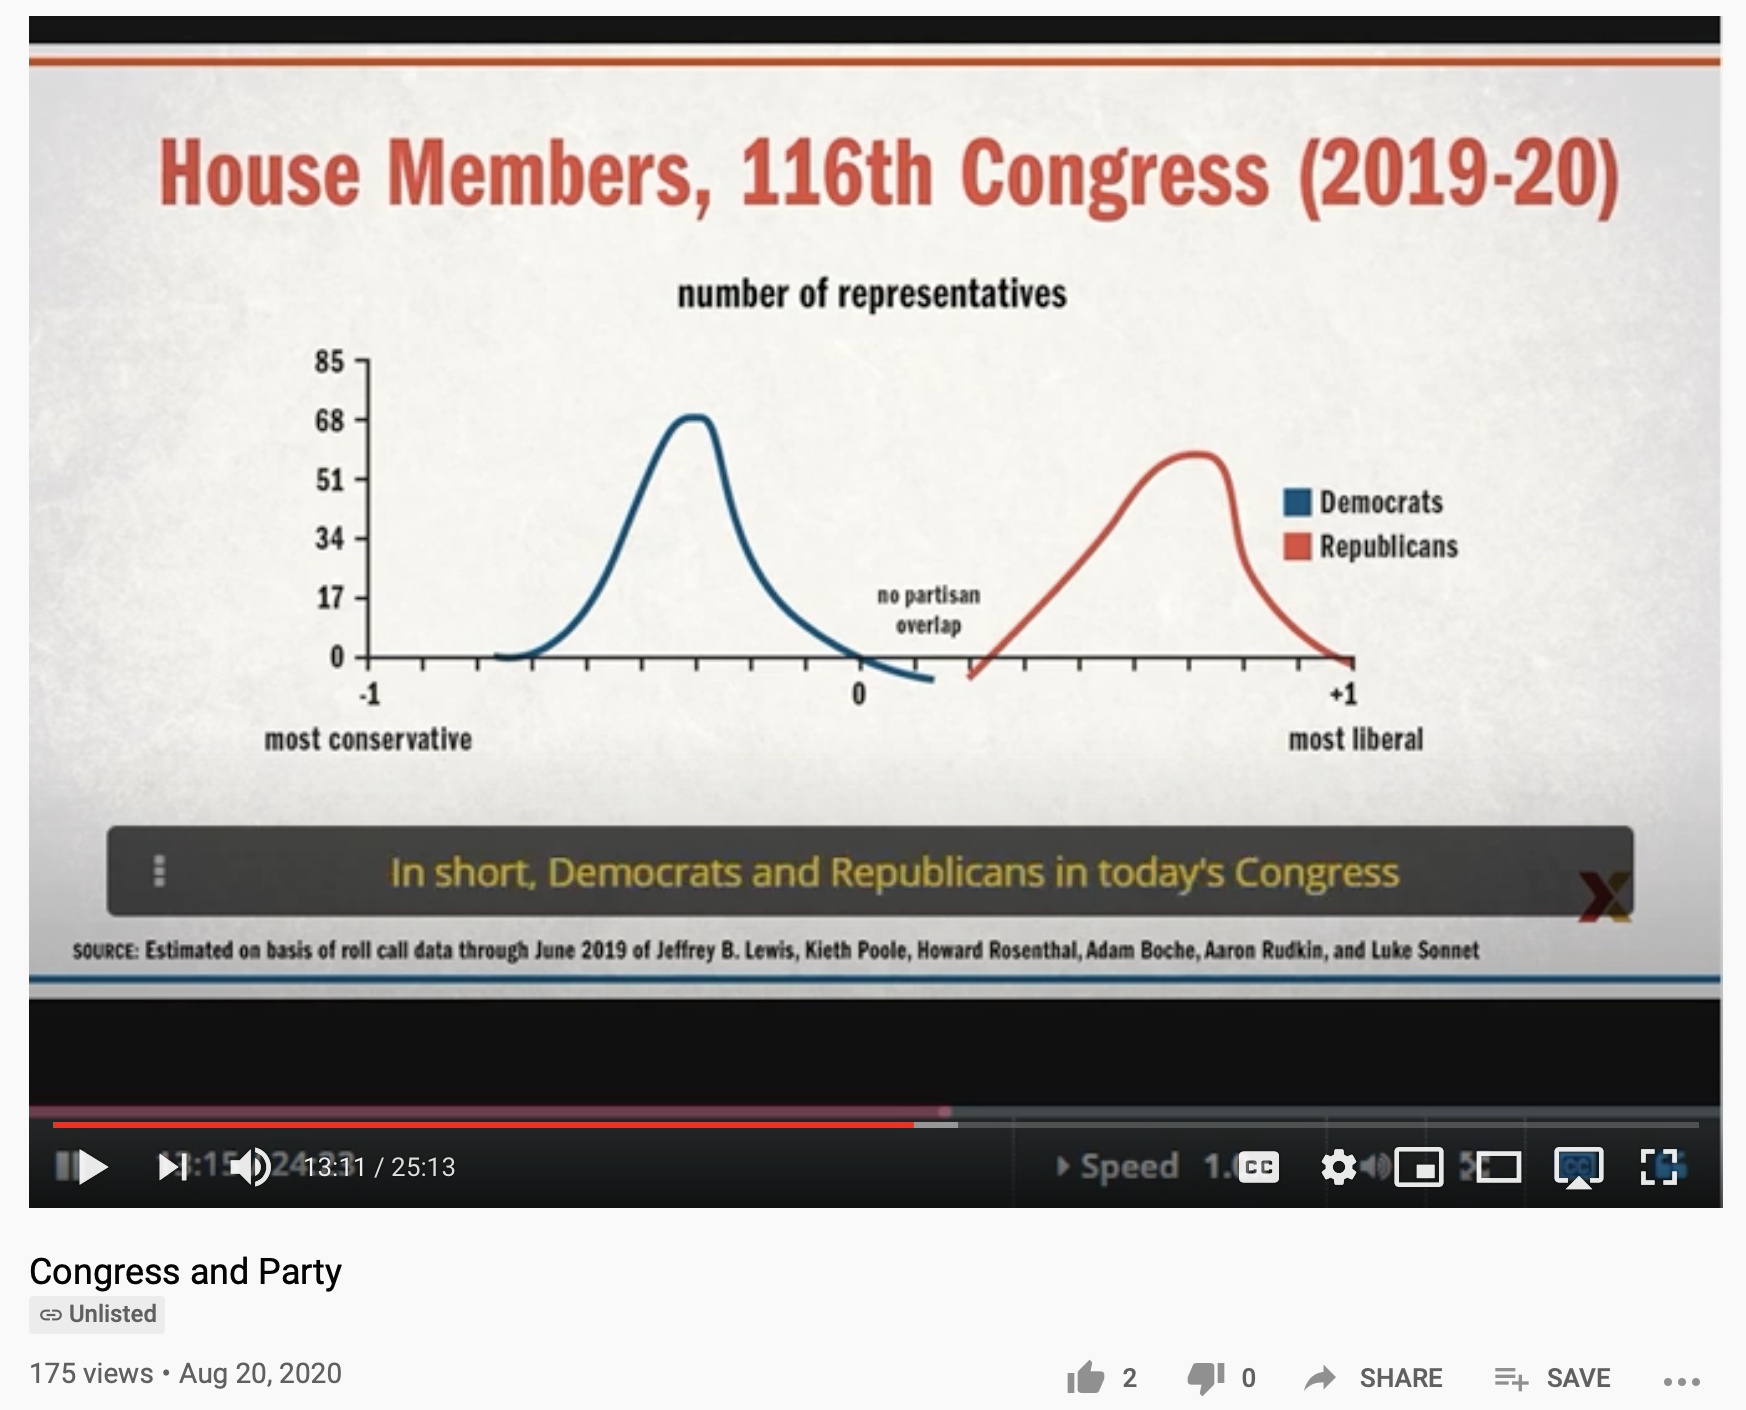 Video lecture from Harvard professor, Thomas Patterson, on Congress and Party available from YouTube and his HarvardX/EdX webpage